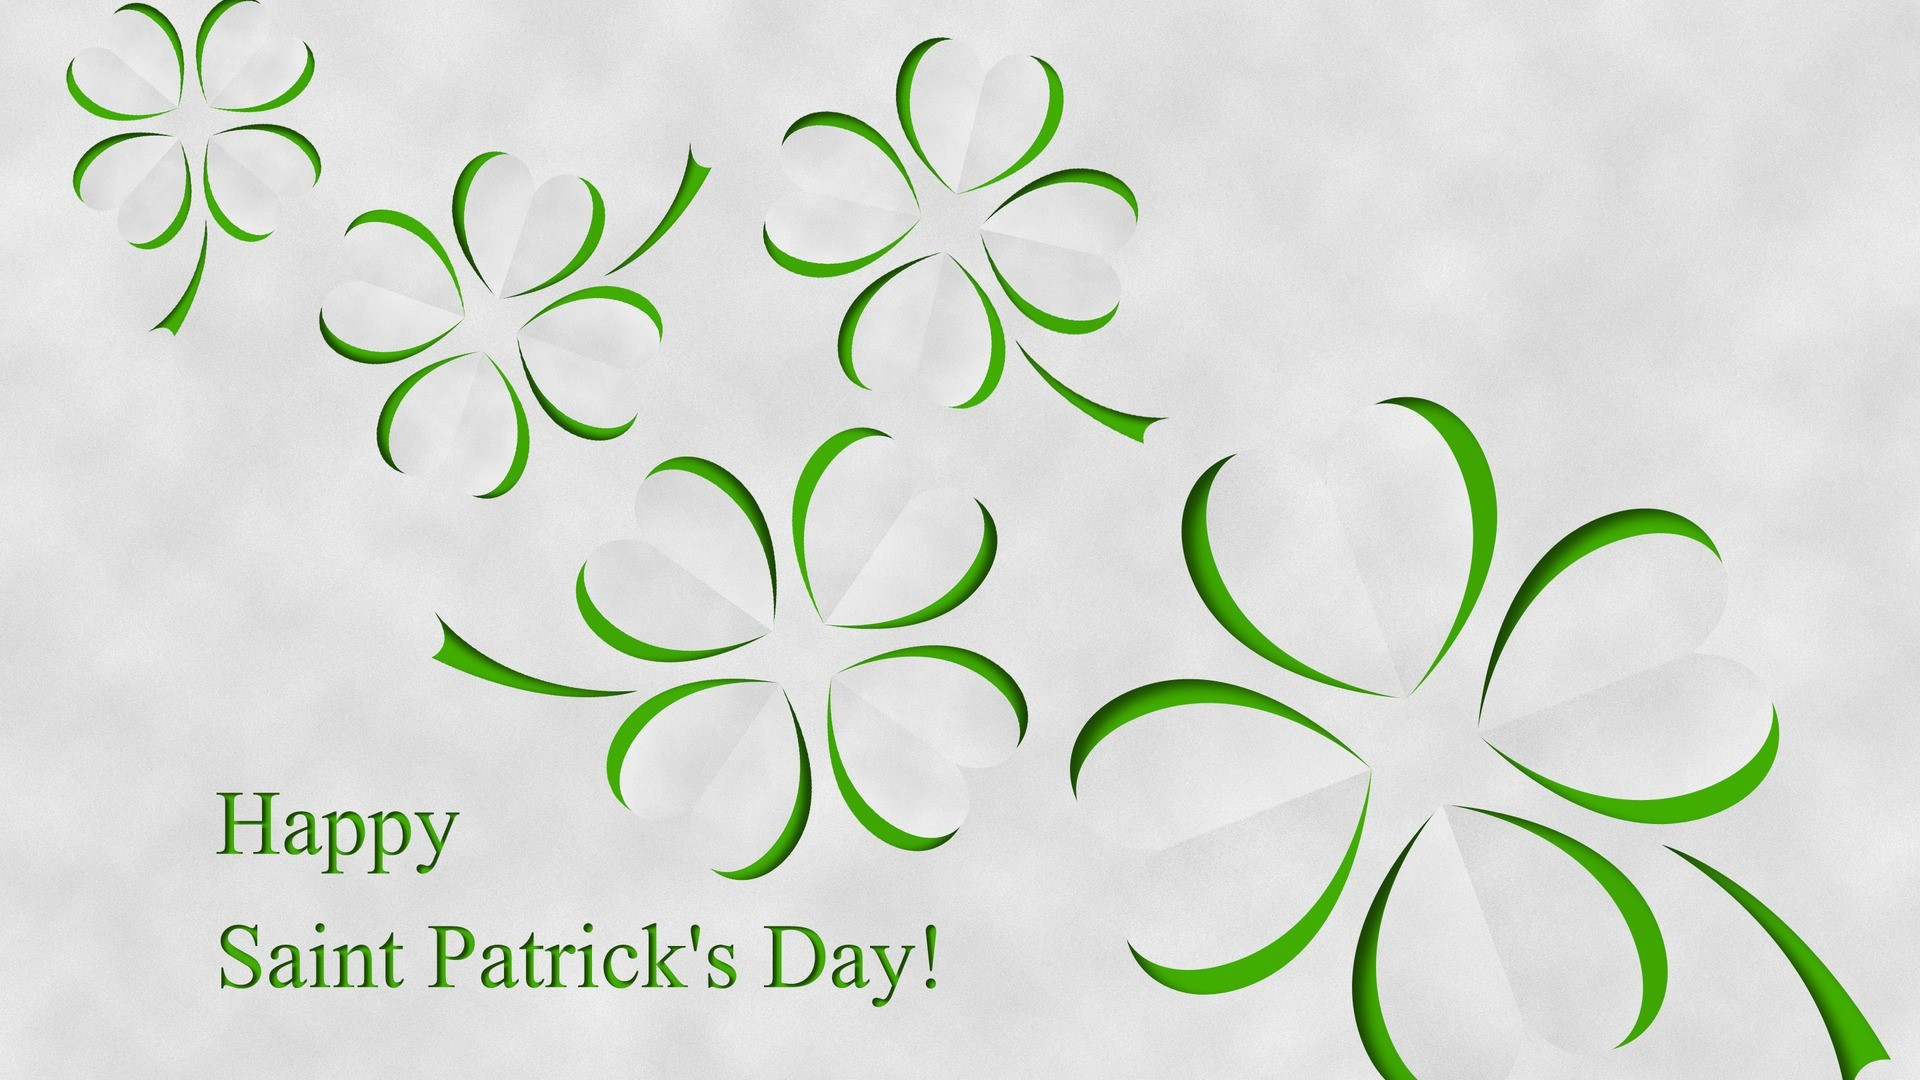 Holiday St. Patrick's Day HD Wallpaper Background Image Wallpaper theme